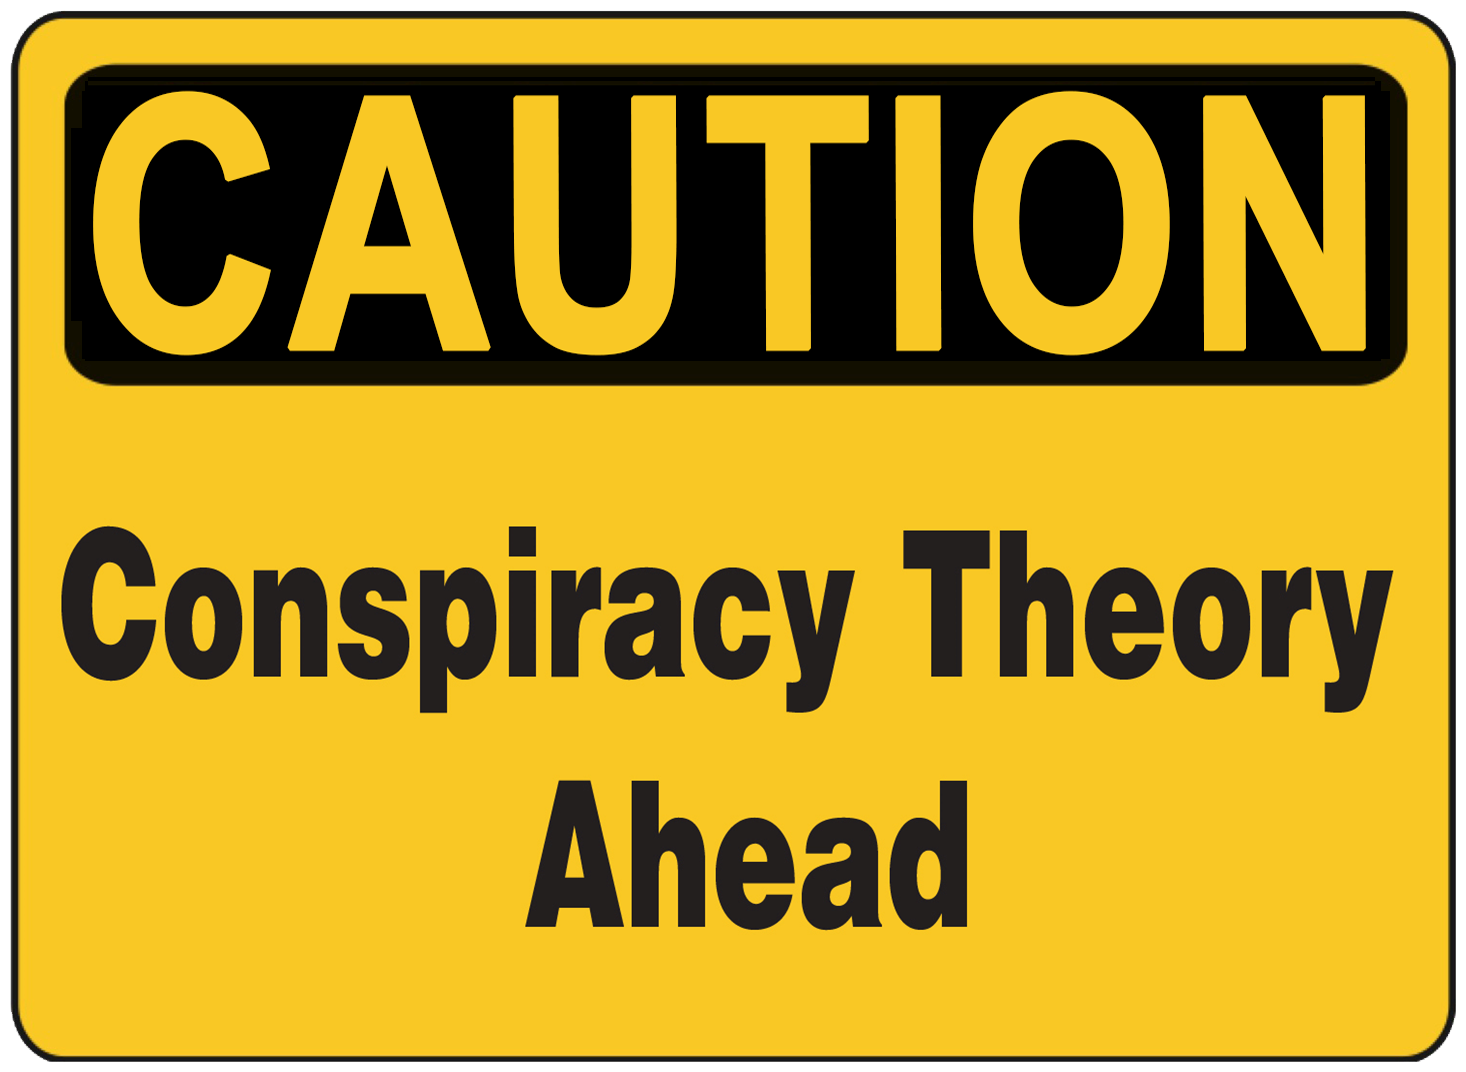 CAUTION - Conspiracy Theory Ahead